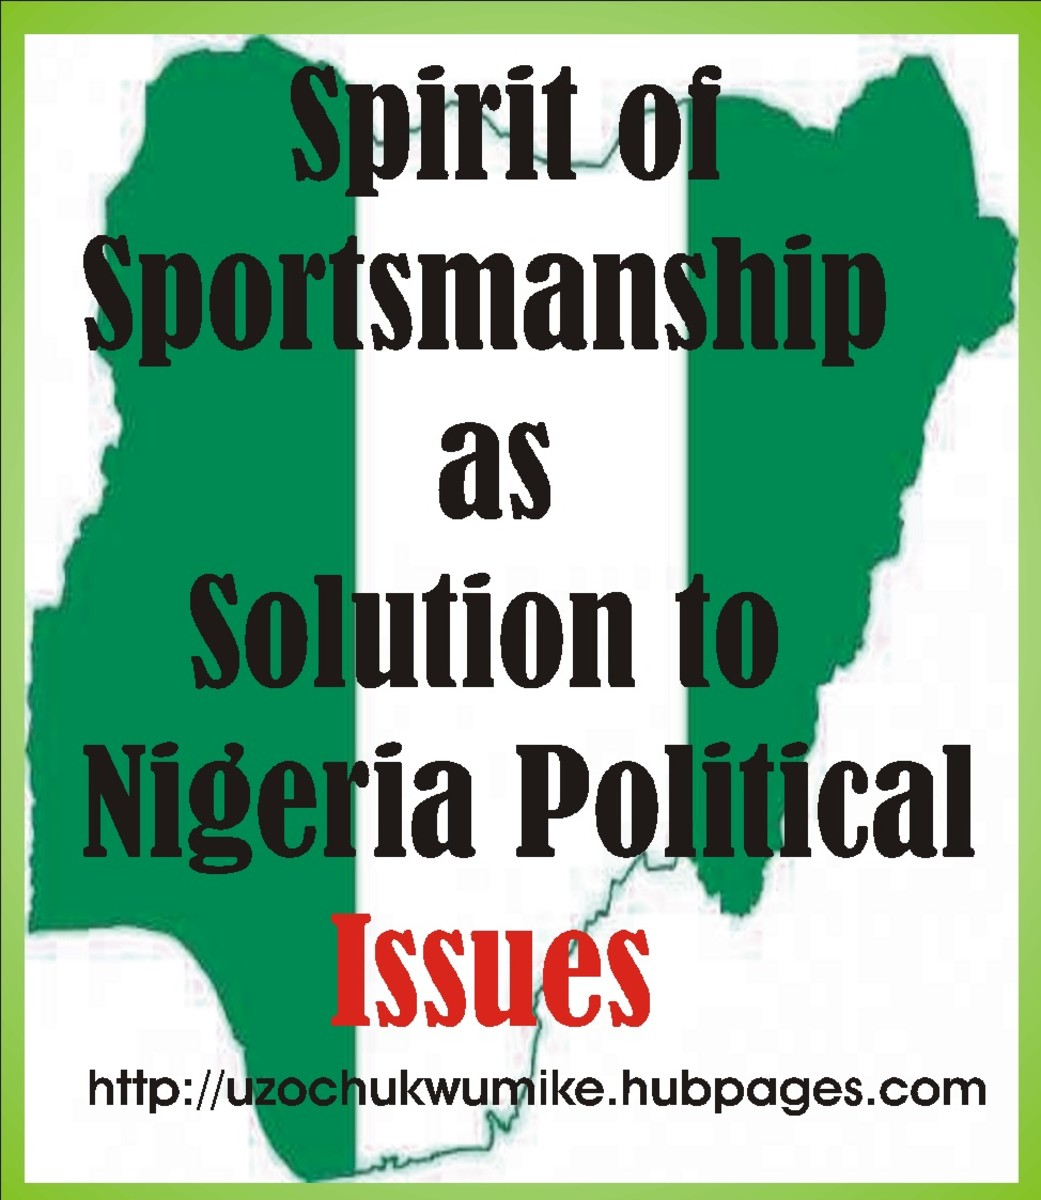 Understanding the spirit of sportsmanship in solving Nigeria's political crises.